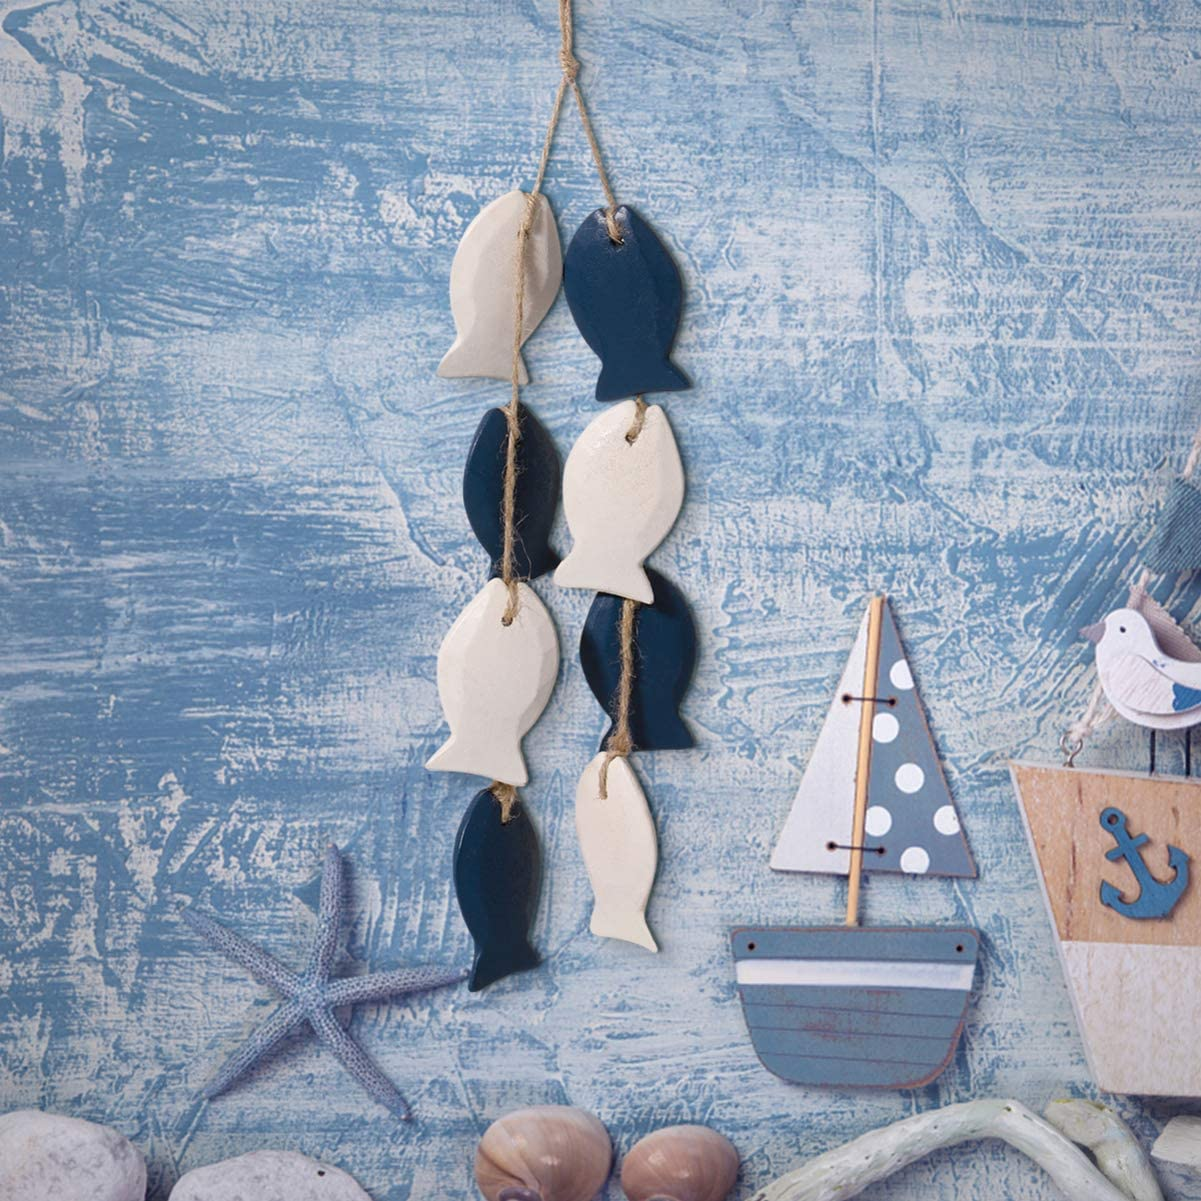 IMIKEYA Wood Fish Decor Wall Hanging Ornament Wooden Pendants 16.1 Inch Mediterranean Style Wall Decor for Living Room Home Bedroom